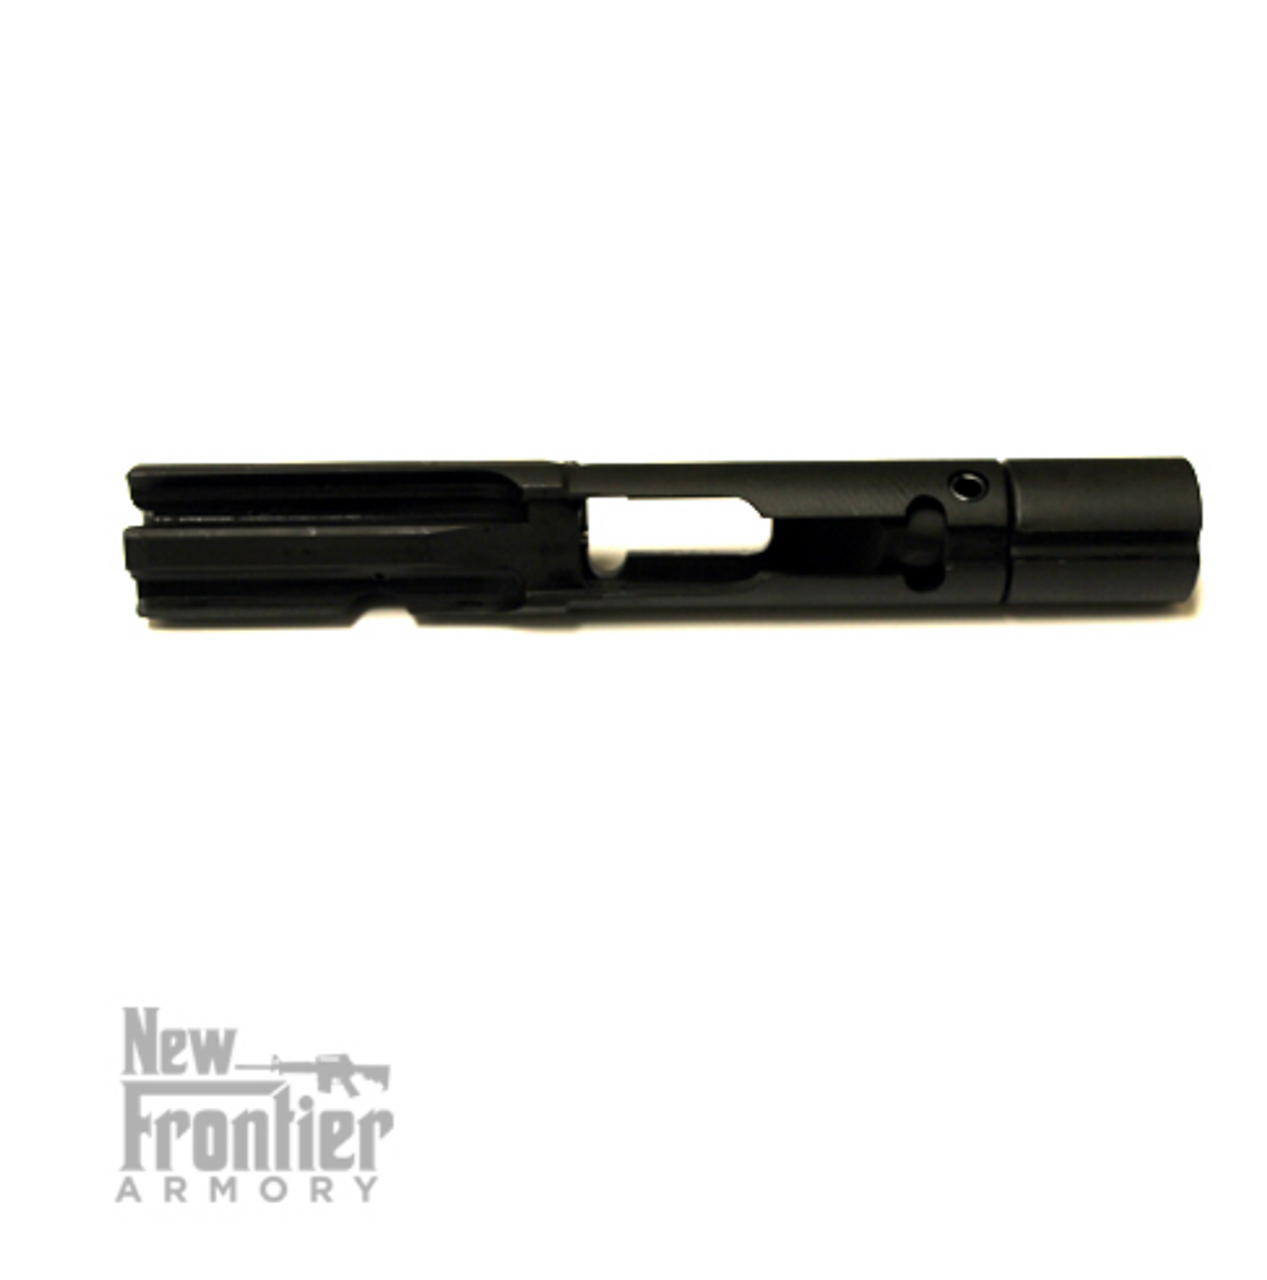 NEW FRONTIER ARMORY AR-45 STANDARD 45 ACP COMPLETE BOLT CARRIER GROUP -